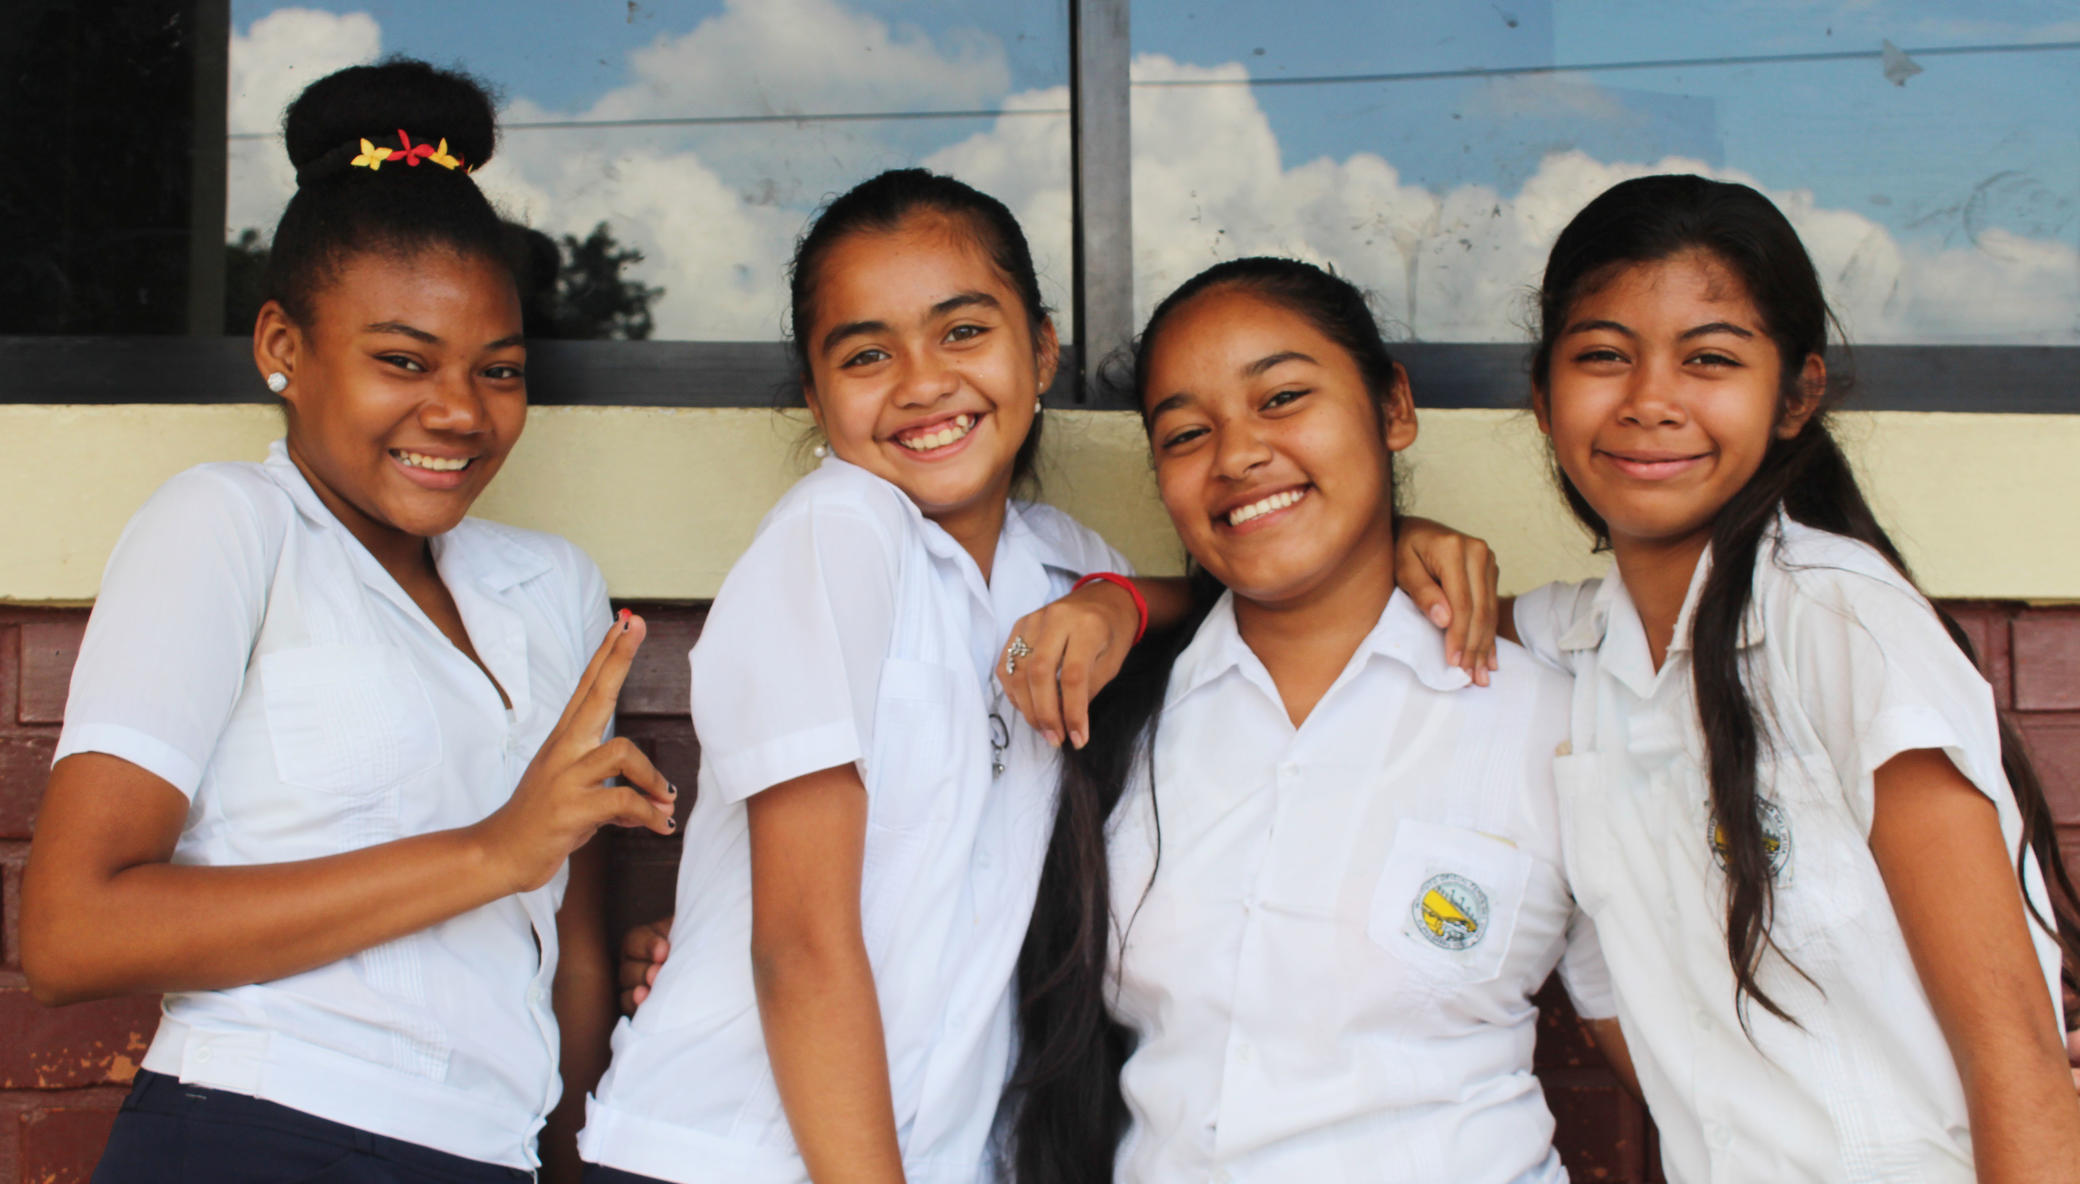 Educate, Empower & Engage Teen Girls in Honduras